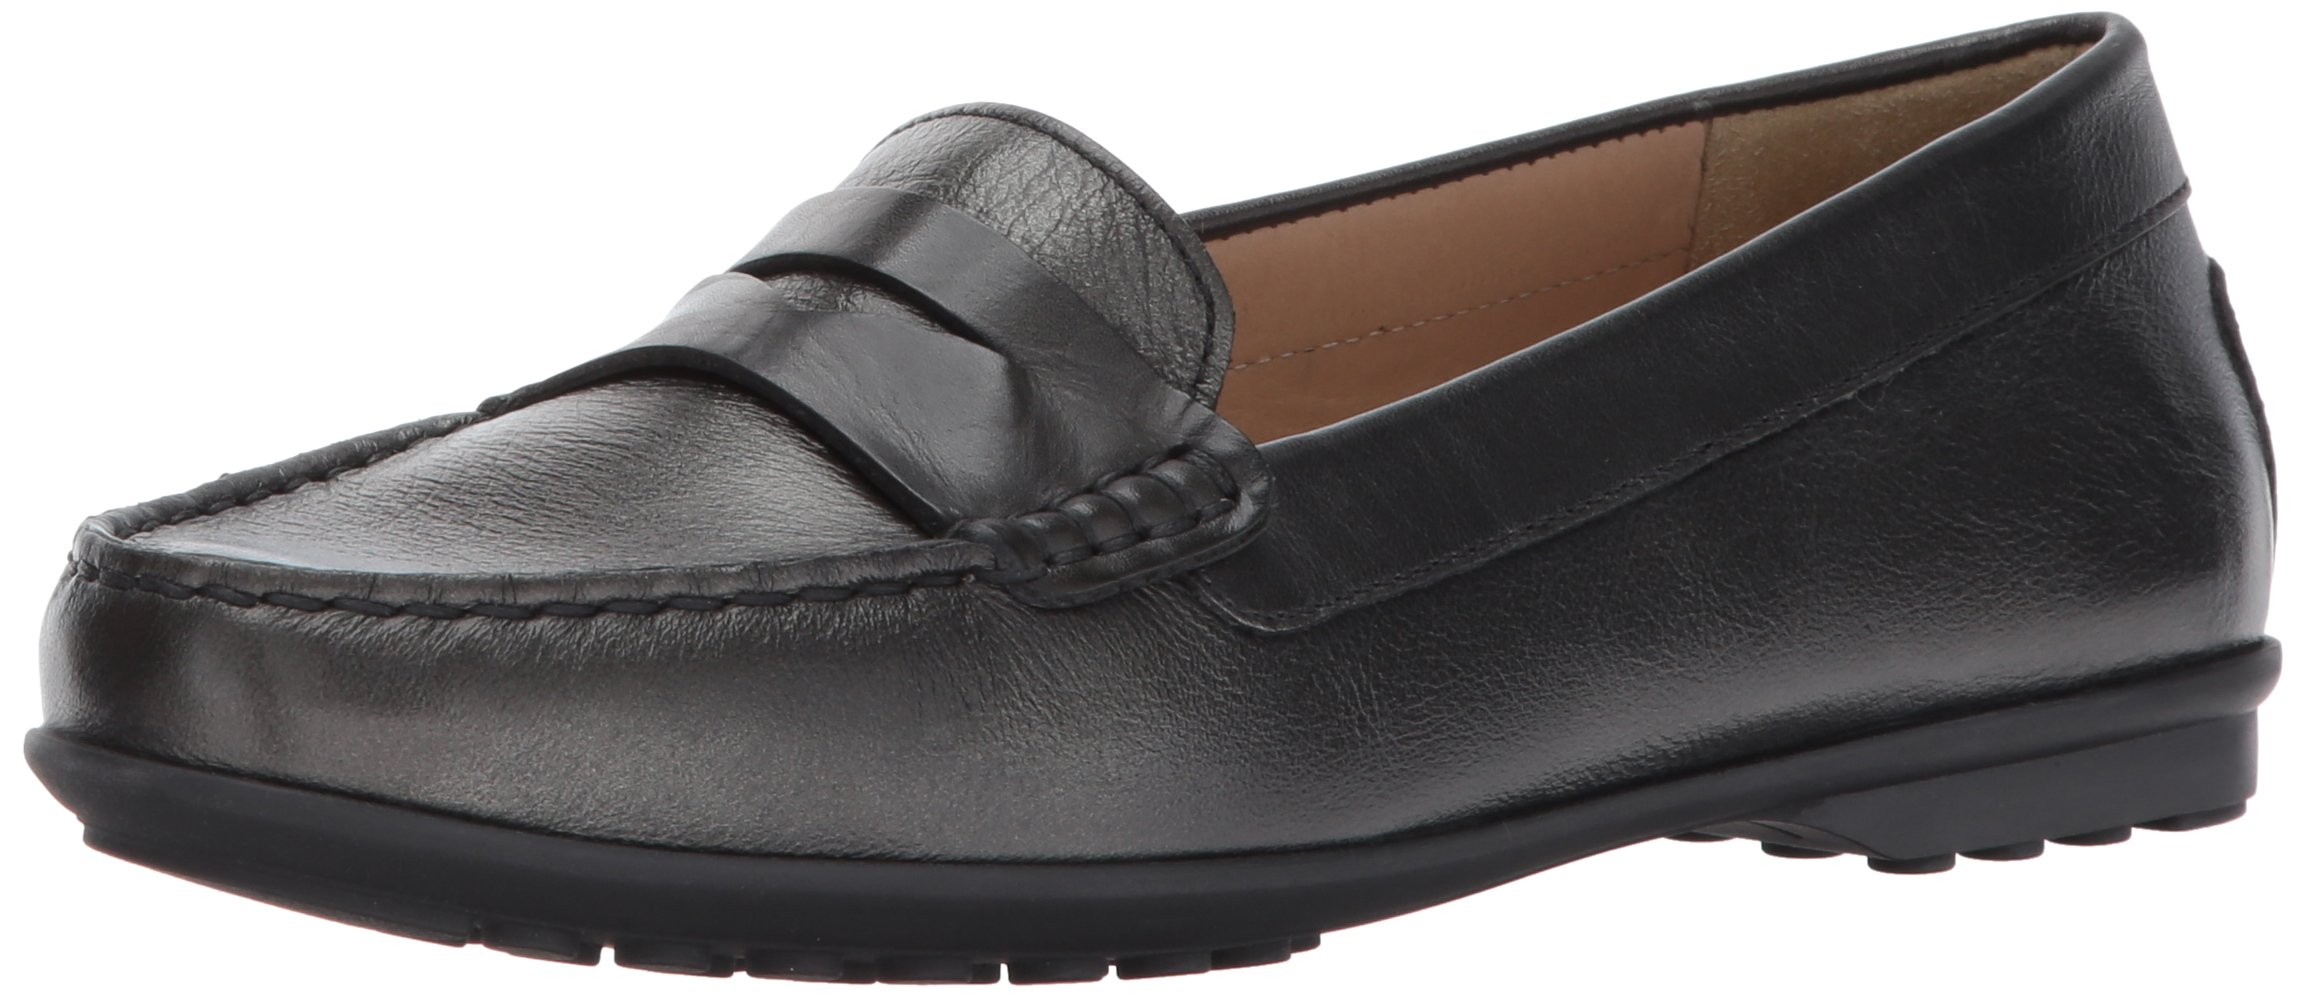 Geox Women's Elidia 5 Slip-on Loafer, Gun/Anthracite, 41 EU/10.5 M US by Geox